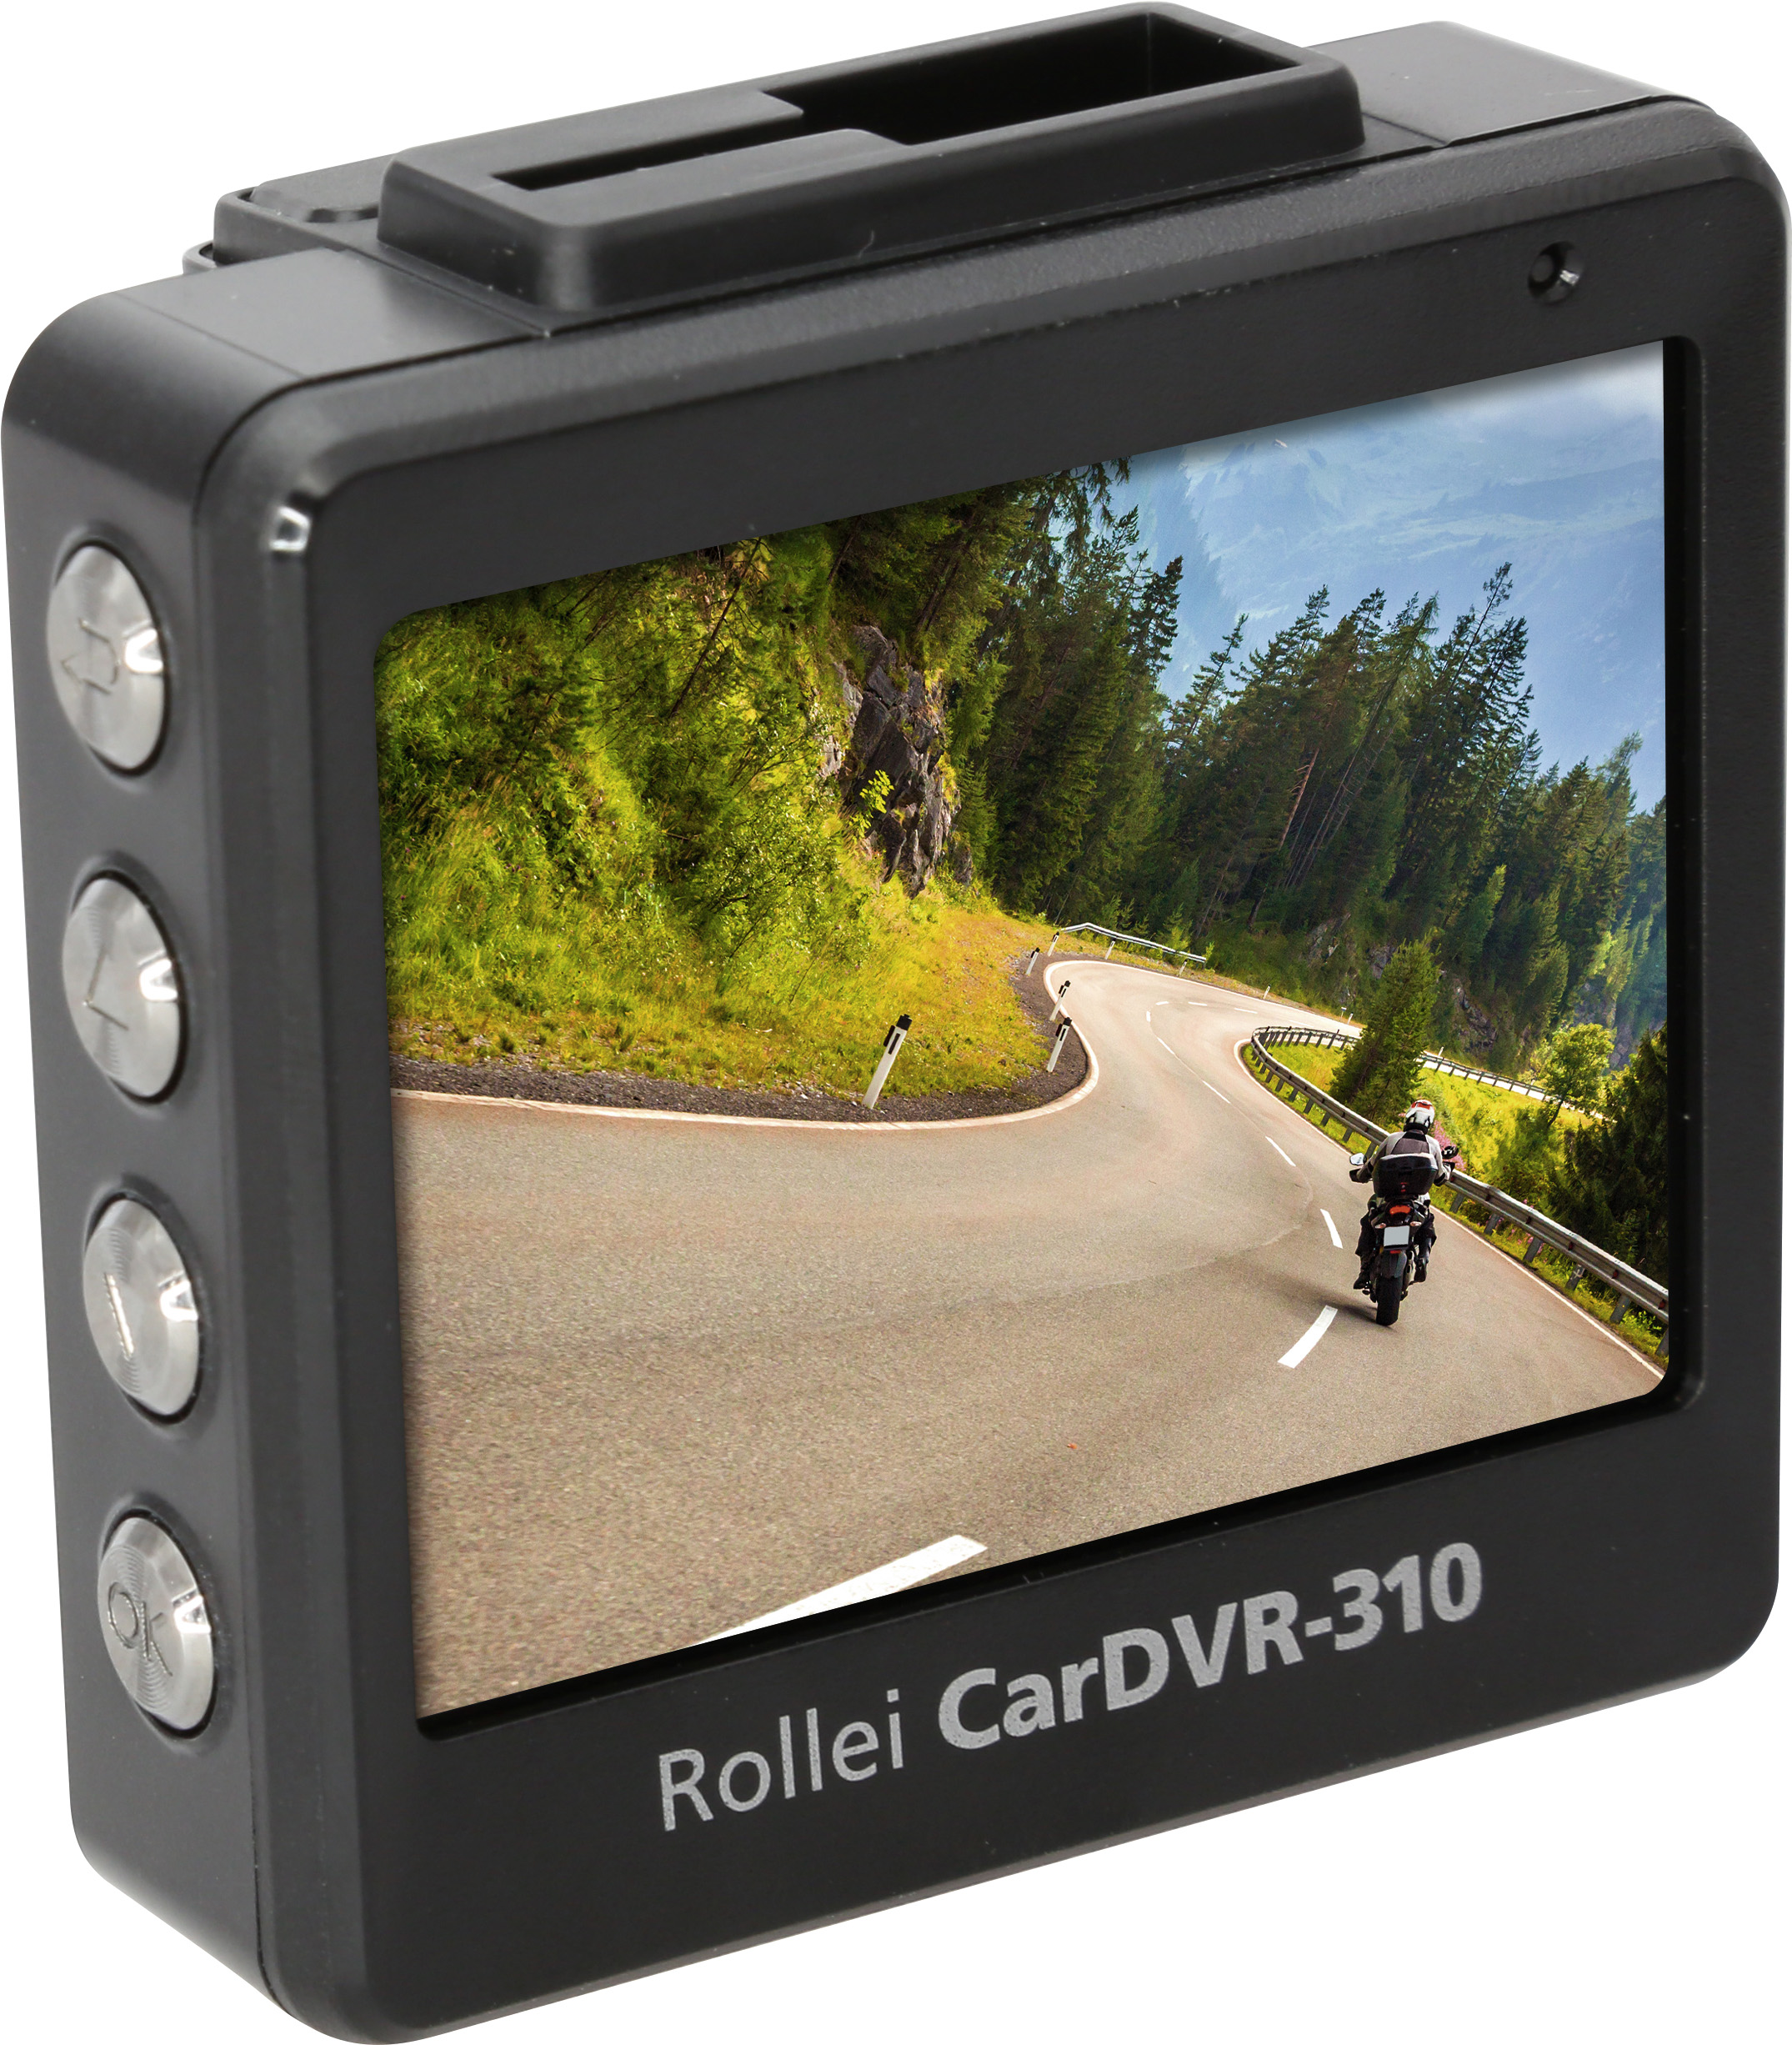 rollei dashcam cardvr 310 autokamera gps full hd g sensor. Black Bedroom Furniture Sets. Home Design Ideas